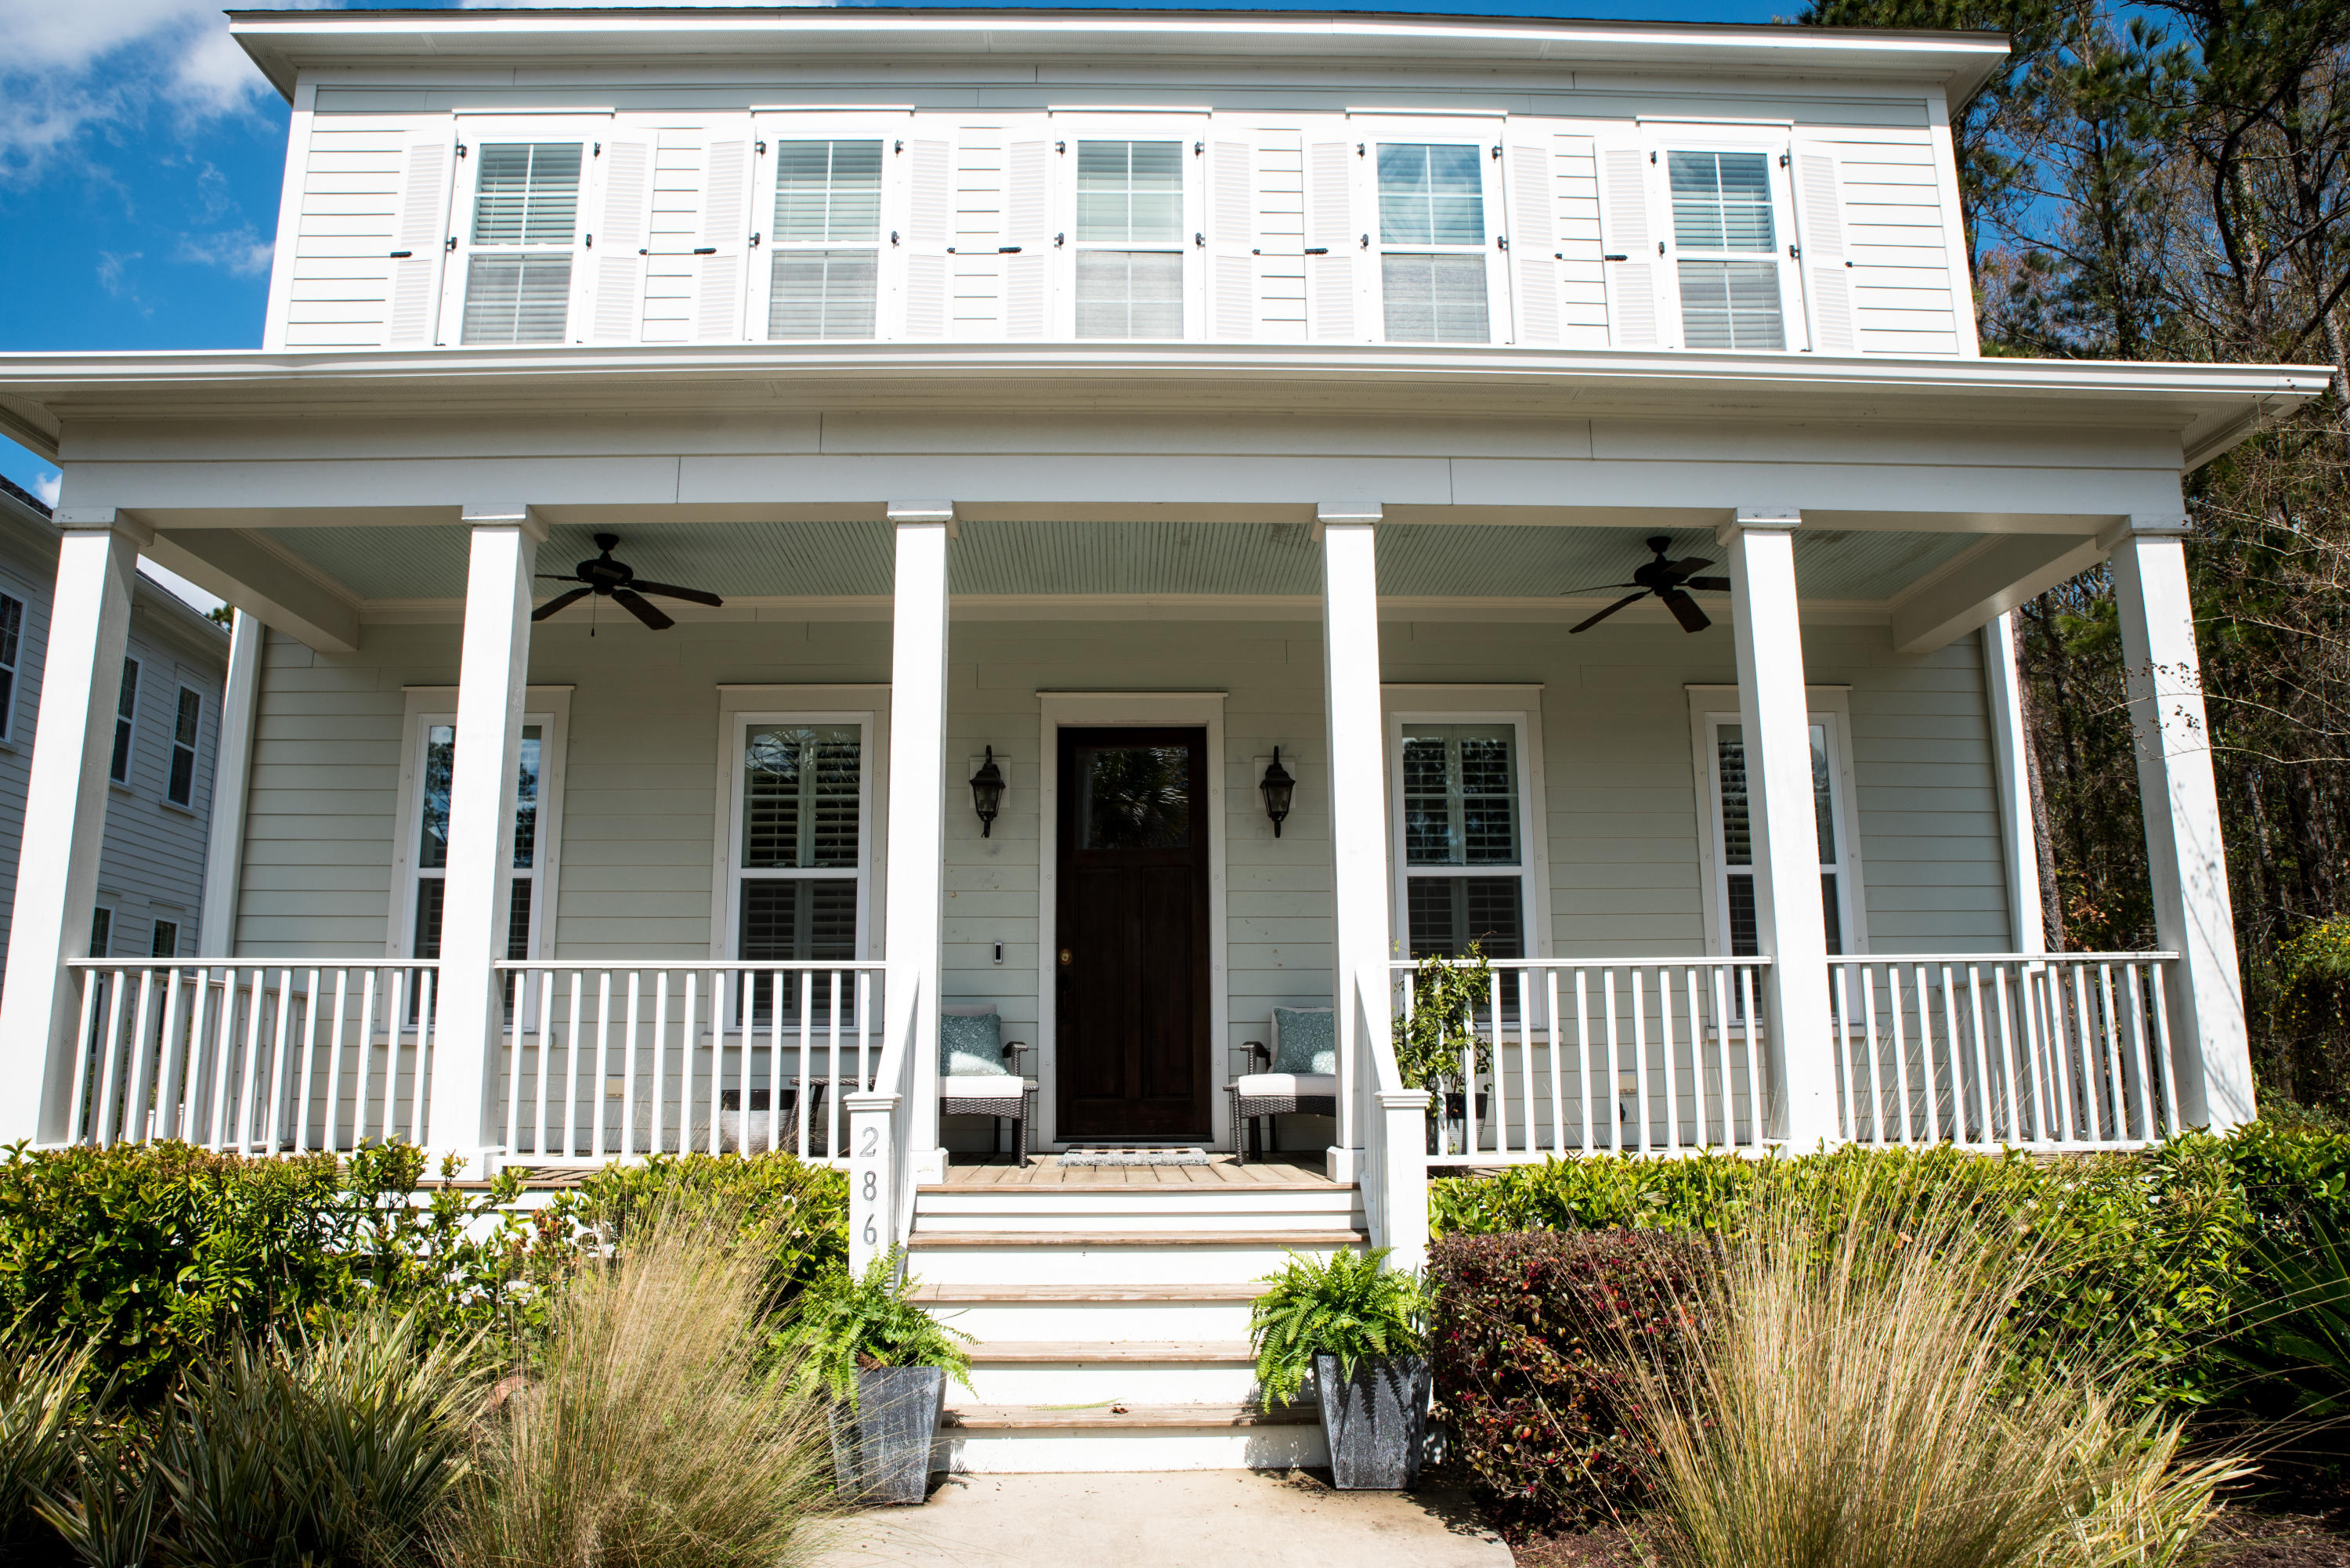 Rivertowne On The Wando Homes For Sale - 2861 Rivertowne, Mount Pleasant, SC - 19